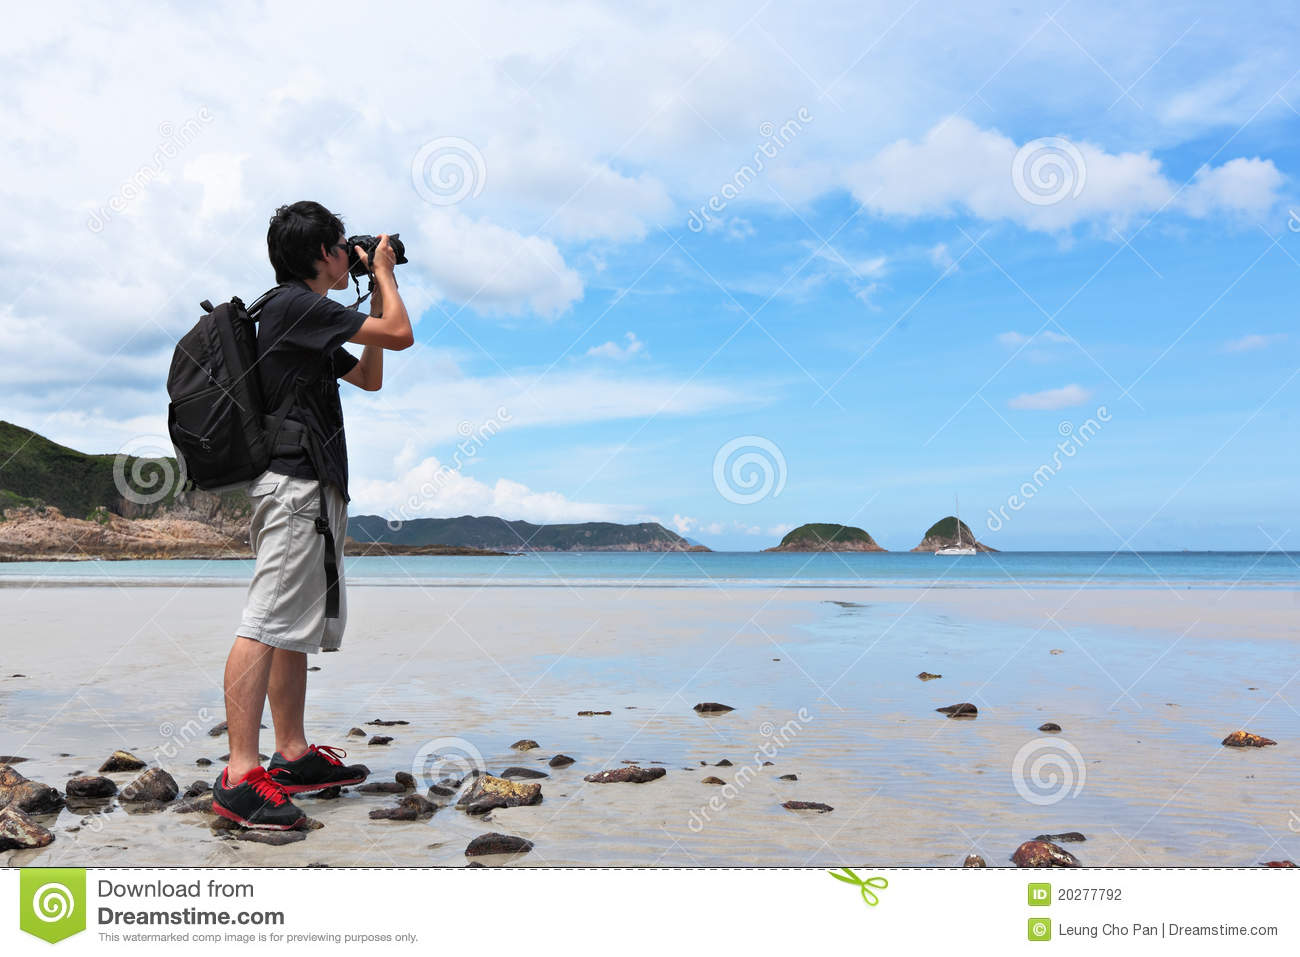 grapher Taking Stock graphy Image